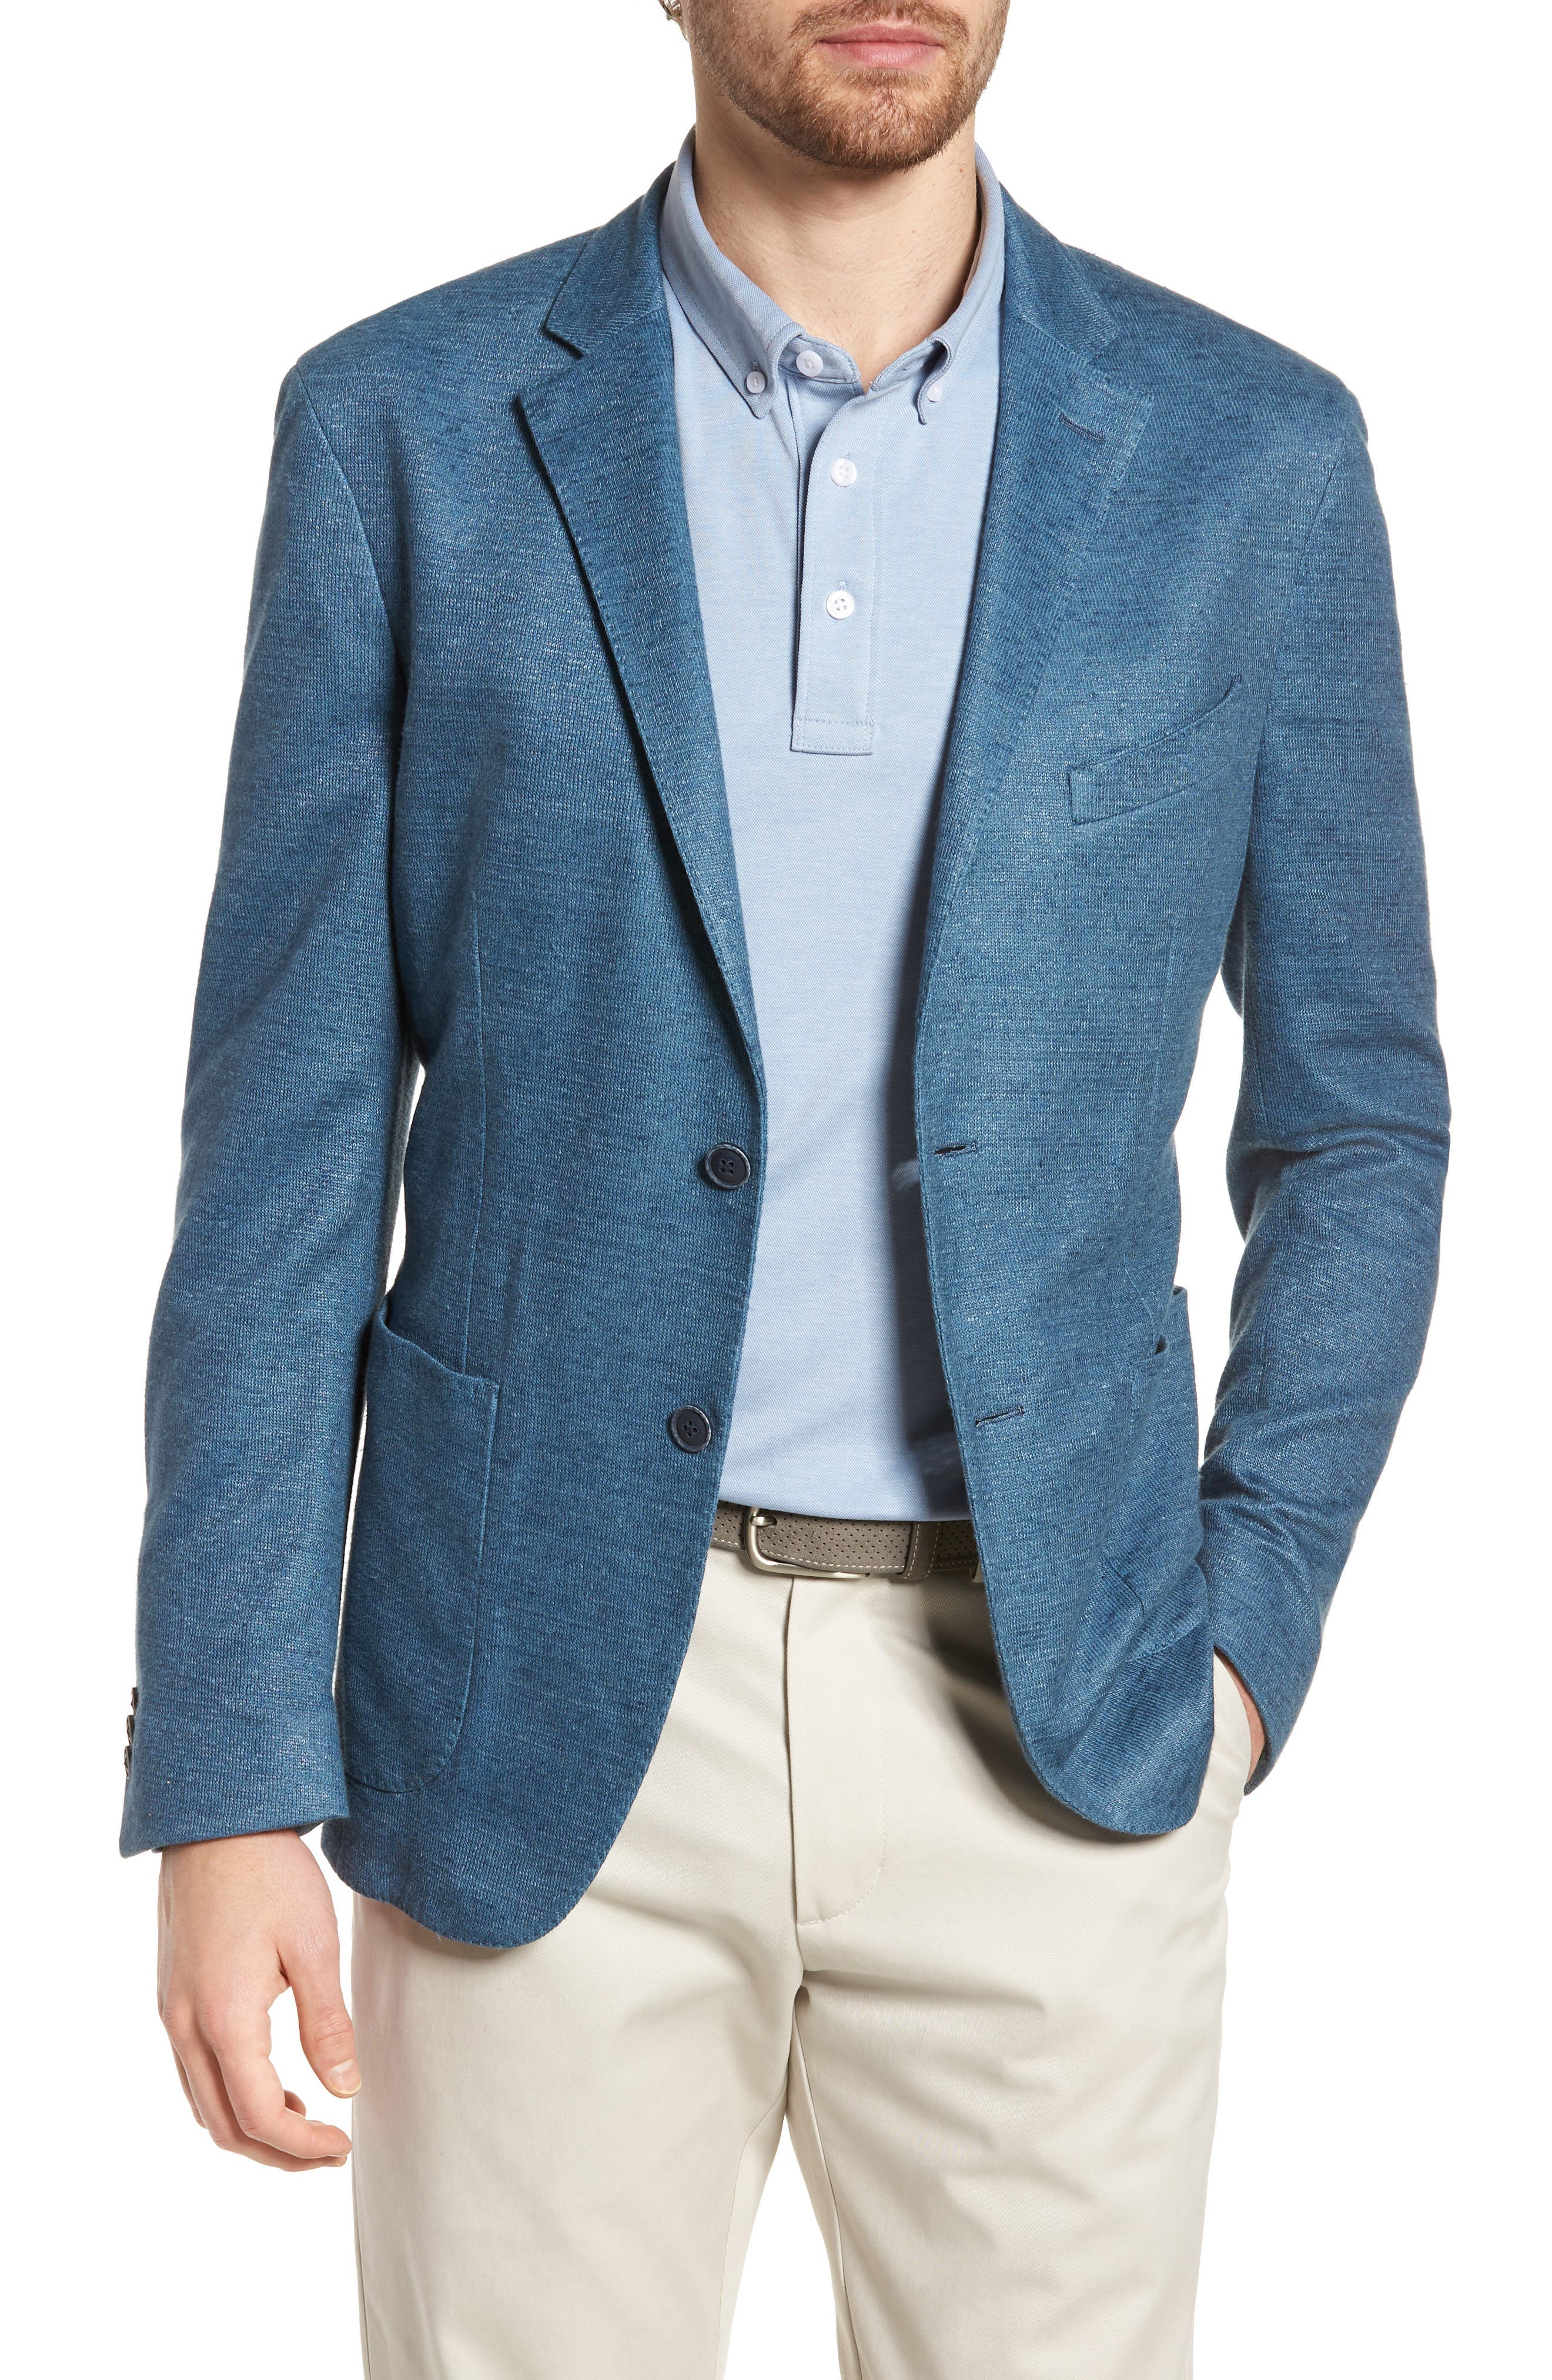 Trim Fit Heathered Jersey Blazer,                             Main thumbnail 1, color,                             420